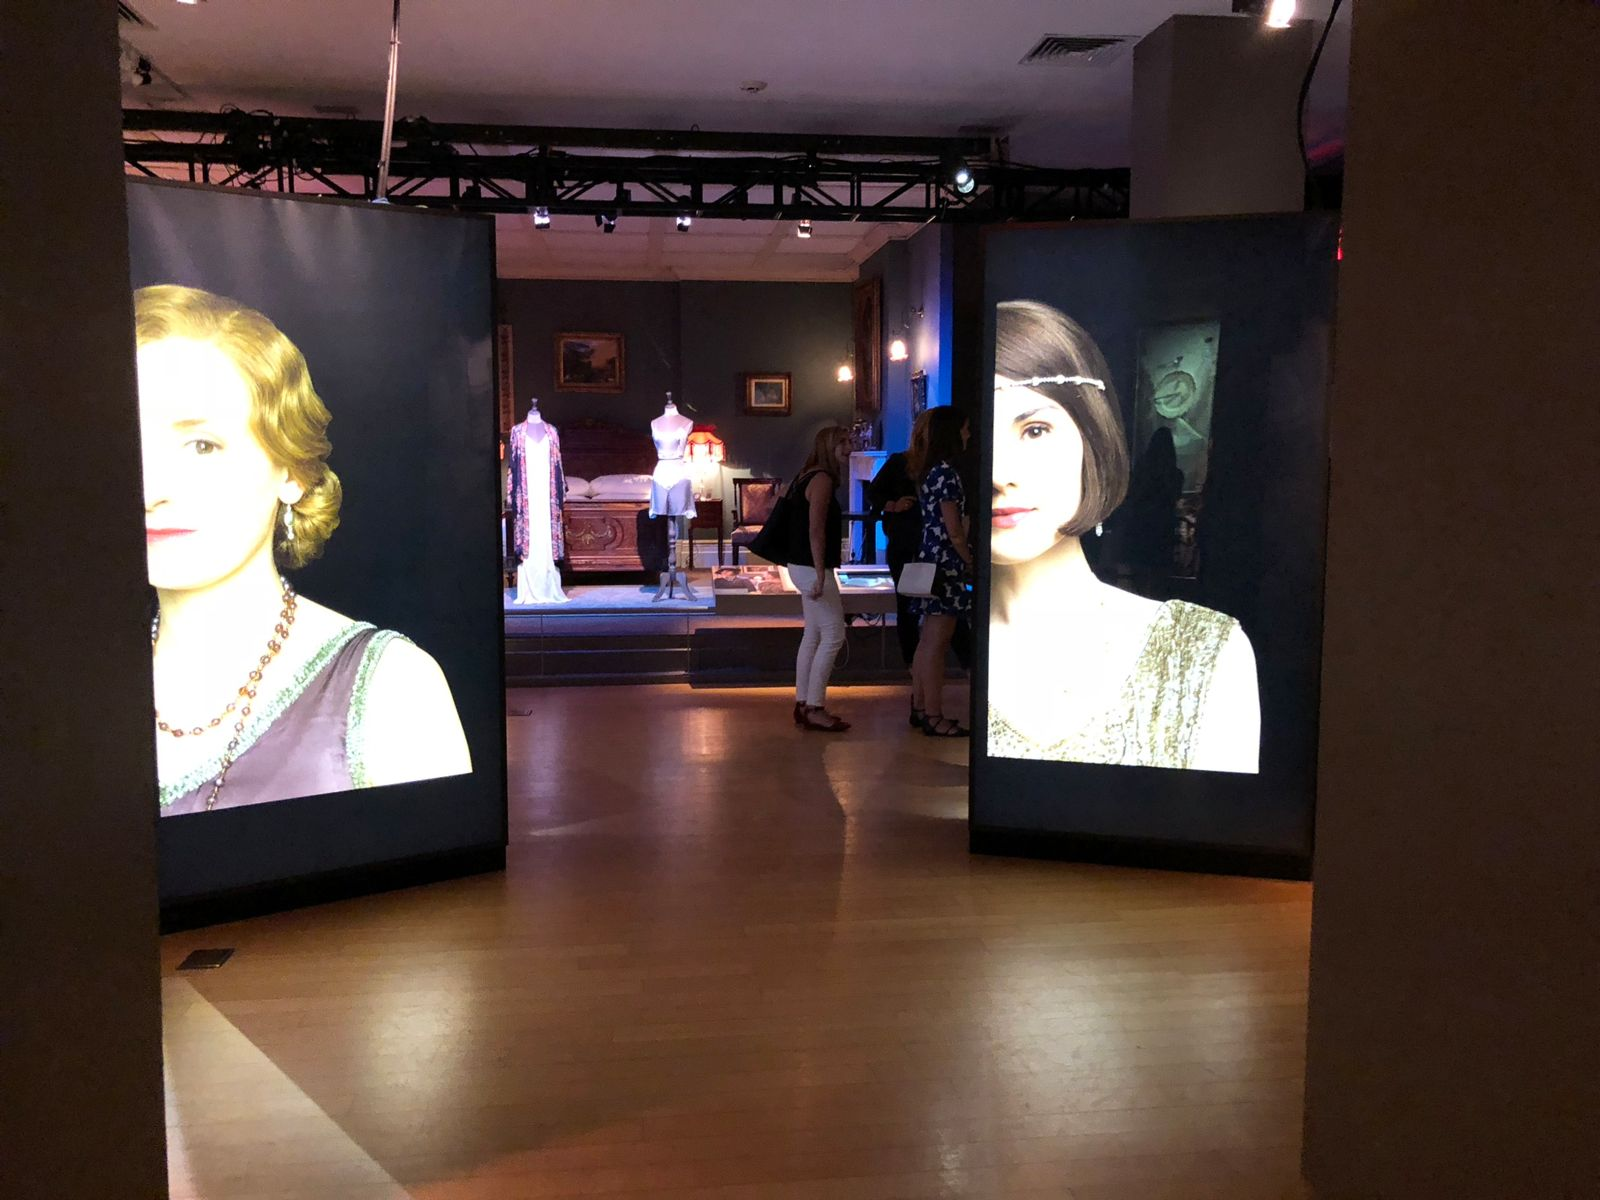 TEA members go behind the scenes at Downton Abbey: the Exhibition in NYC